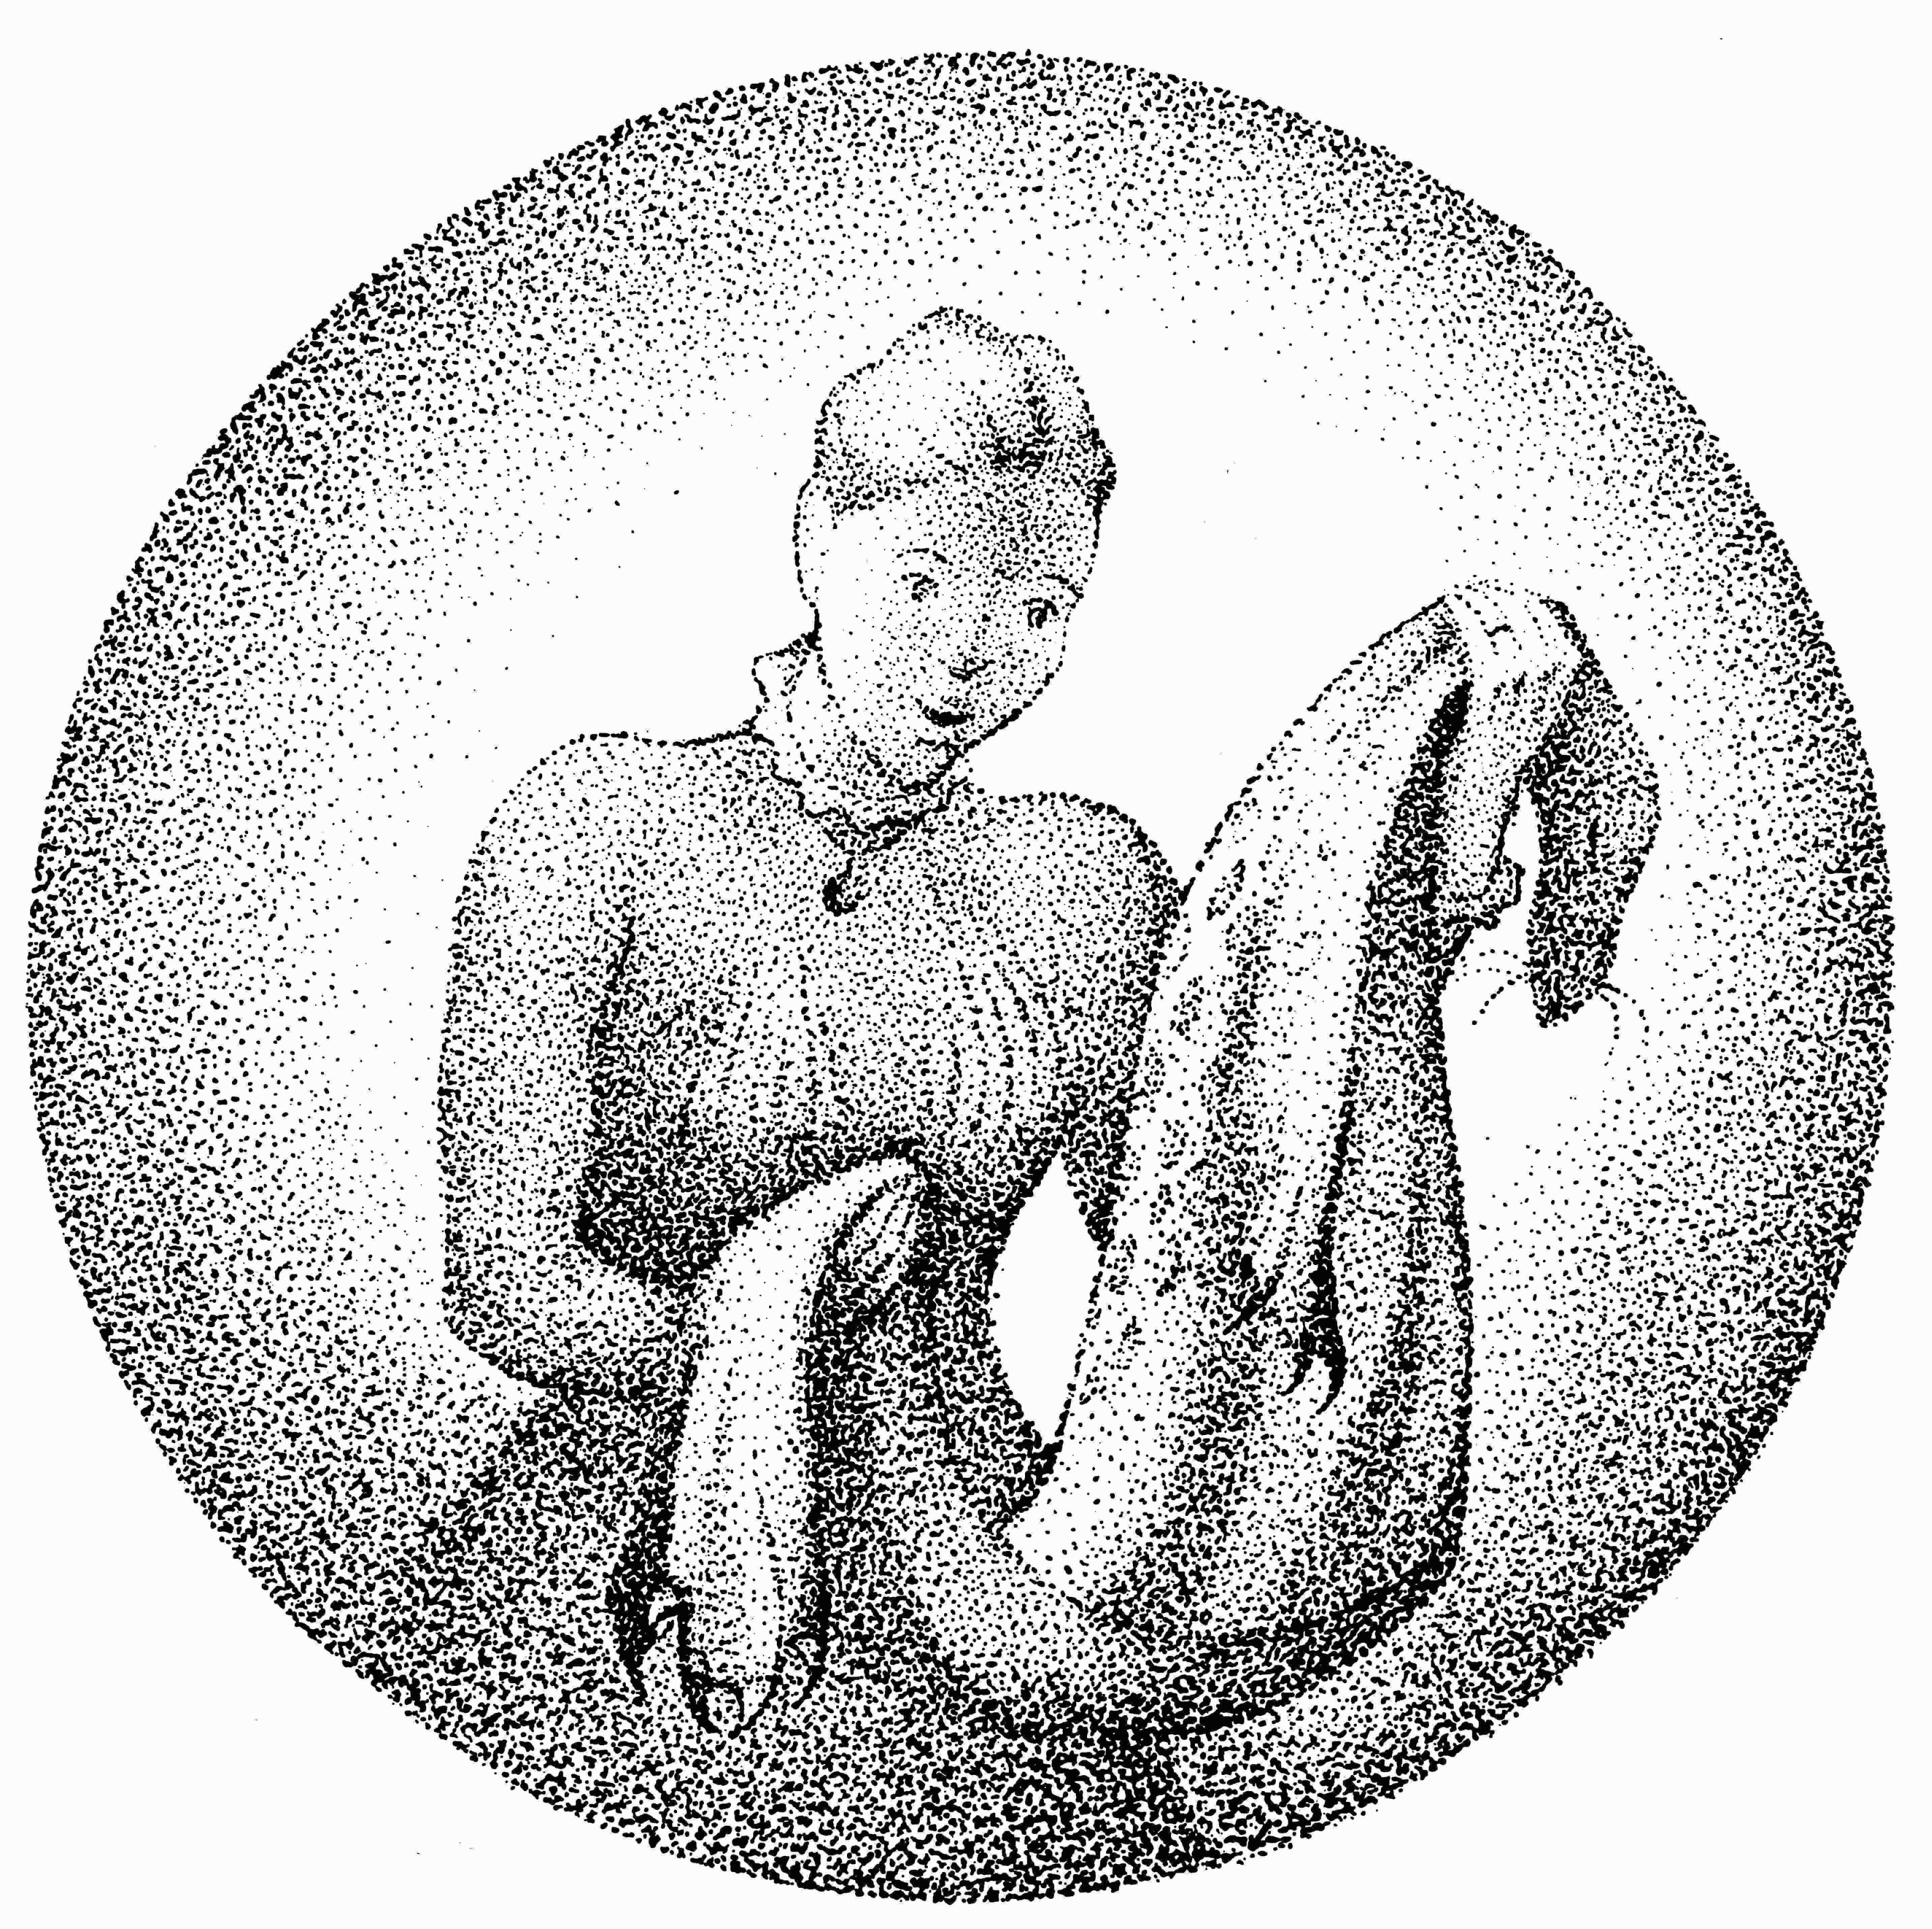 Orkneyology.com - Orkney folklore illustration of a selkie maiden, used by kind permission of Stromness artist, Bryce Wilson. Copyright Bryce Wilson